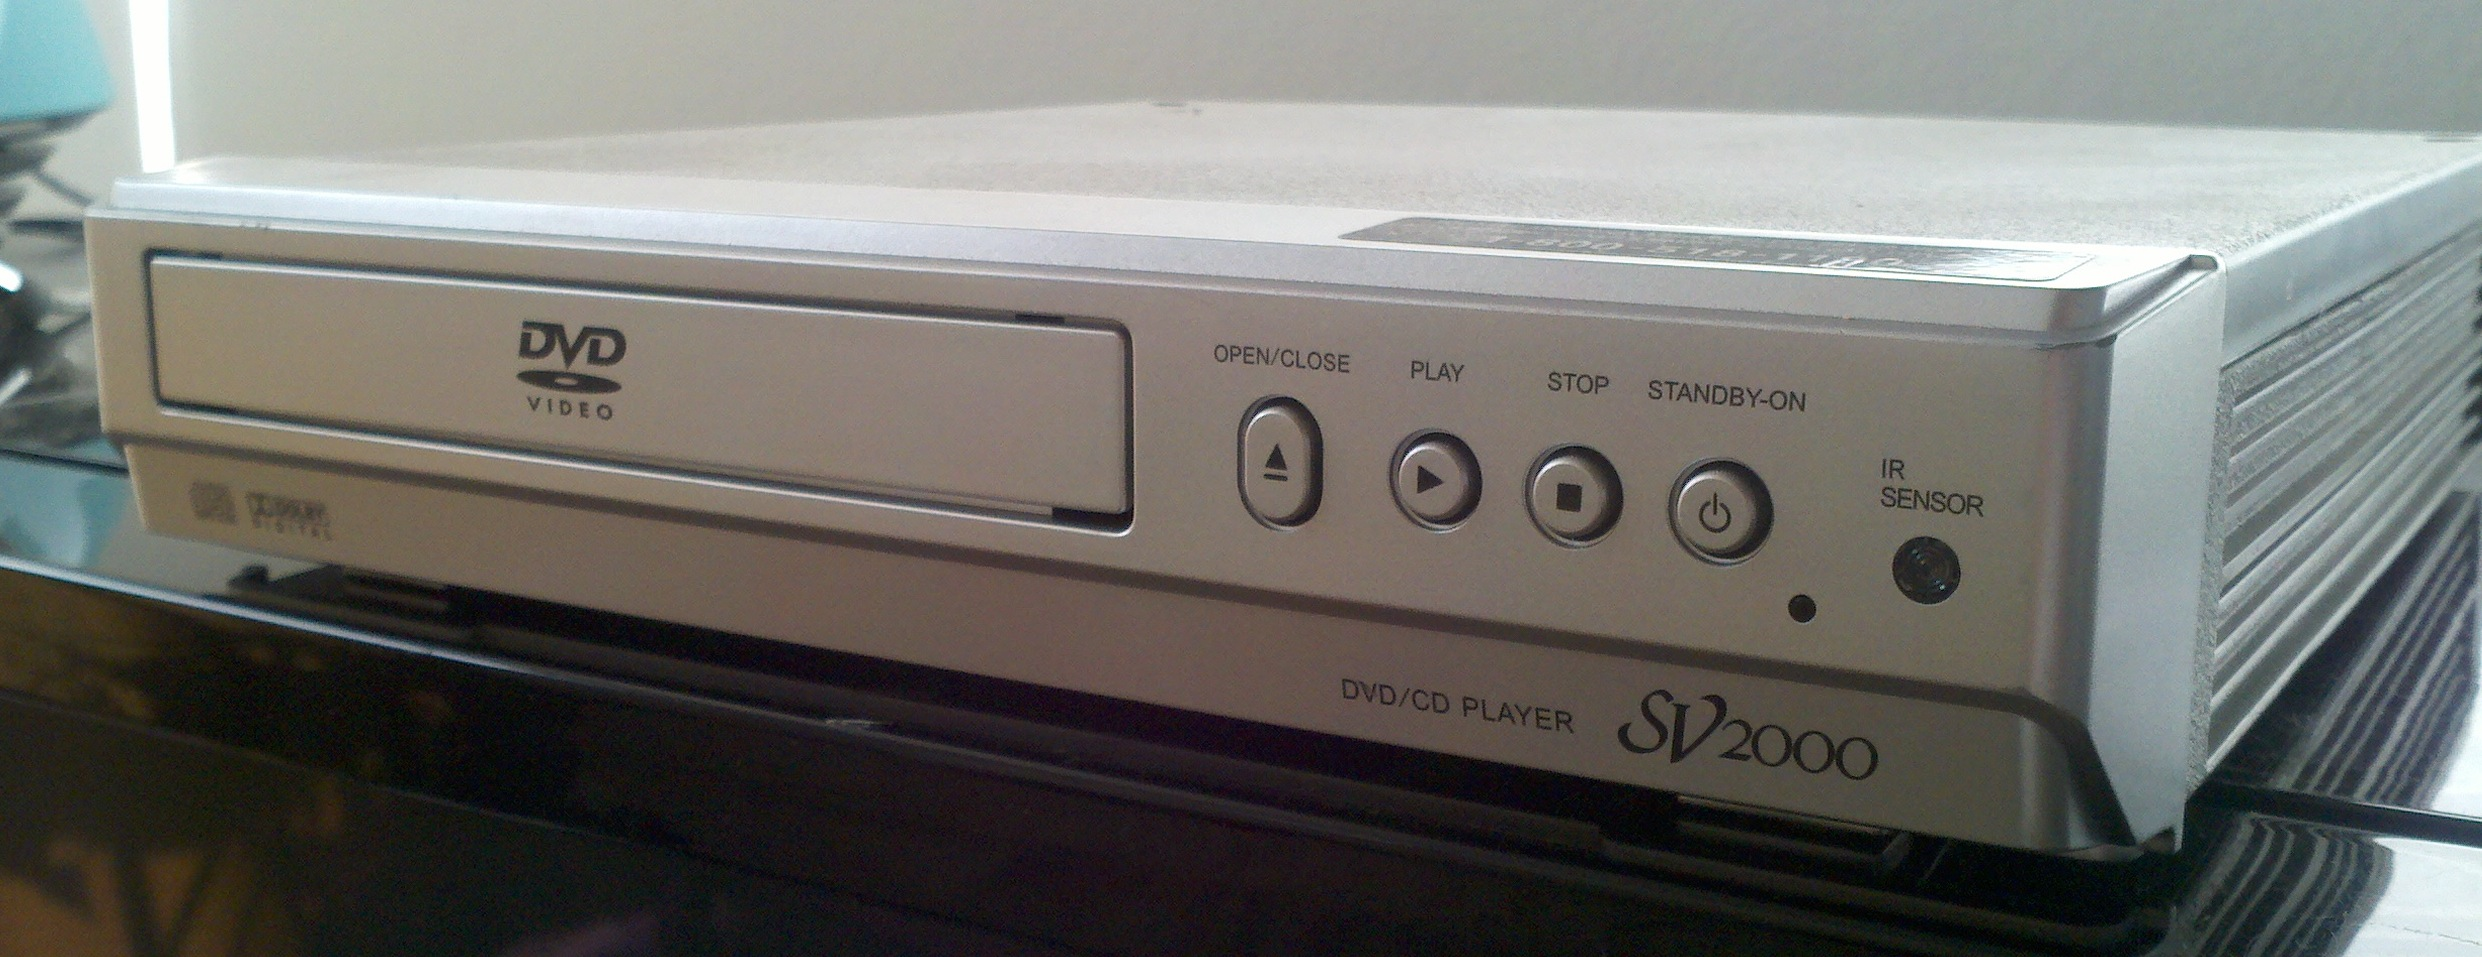 Universal remote codes for sylvania dvd player